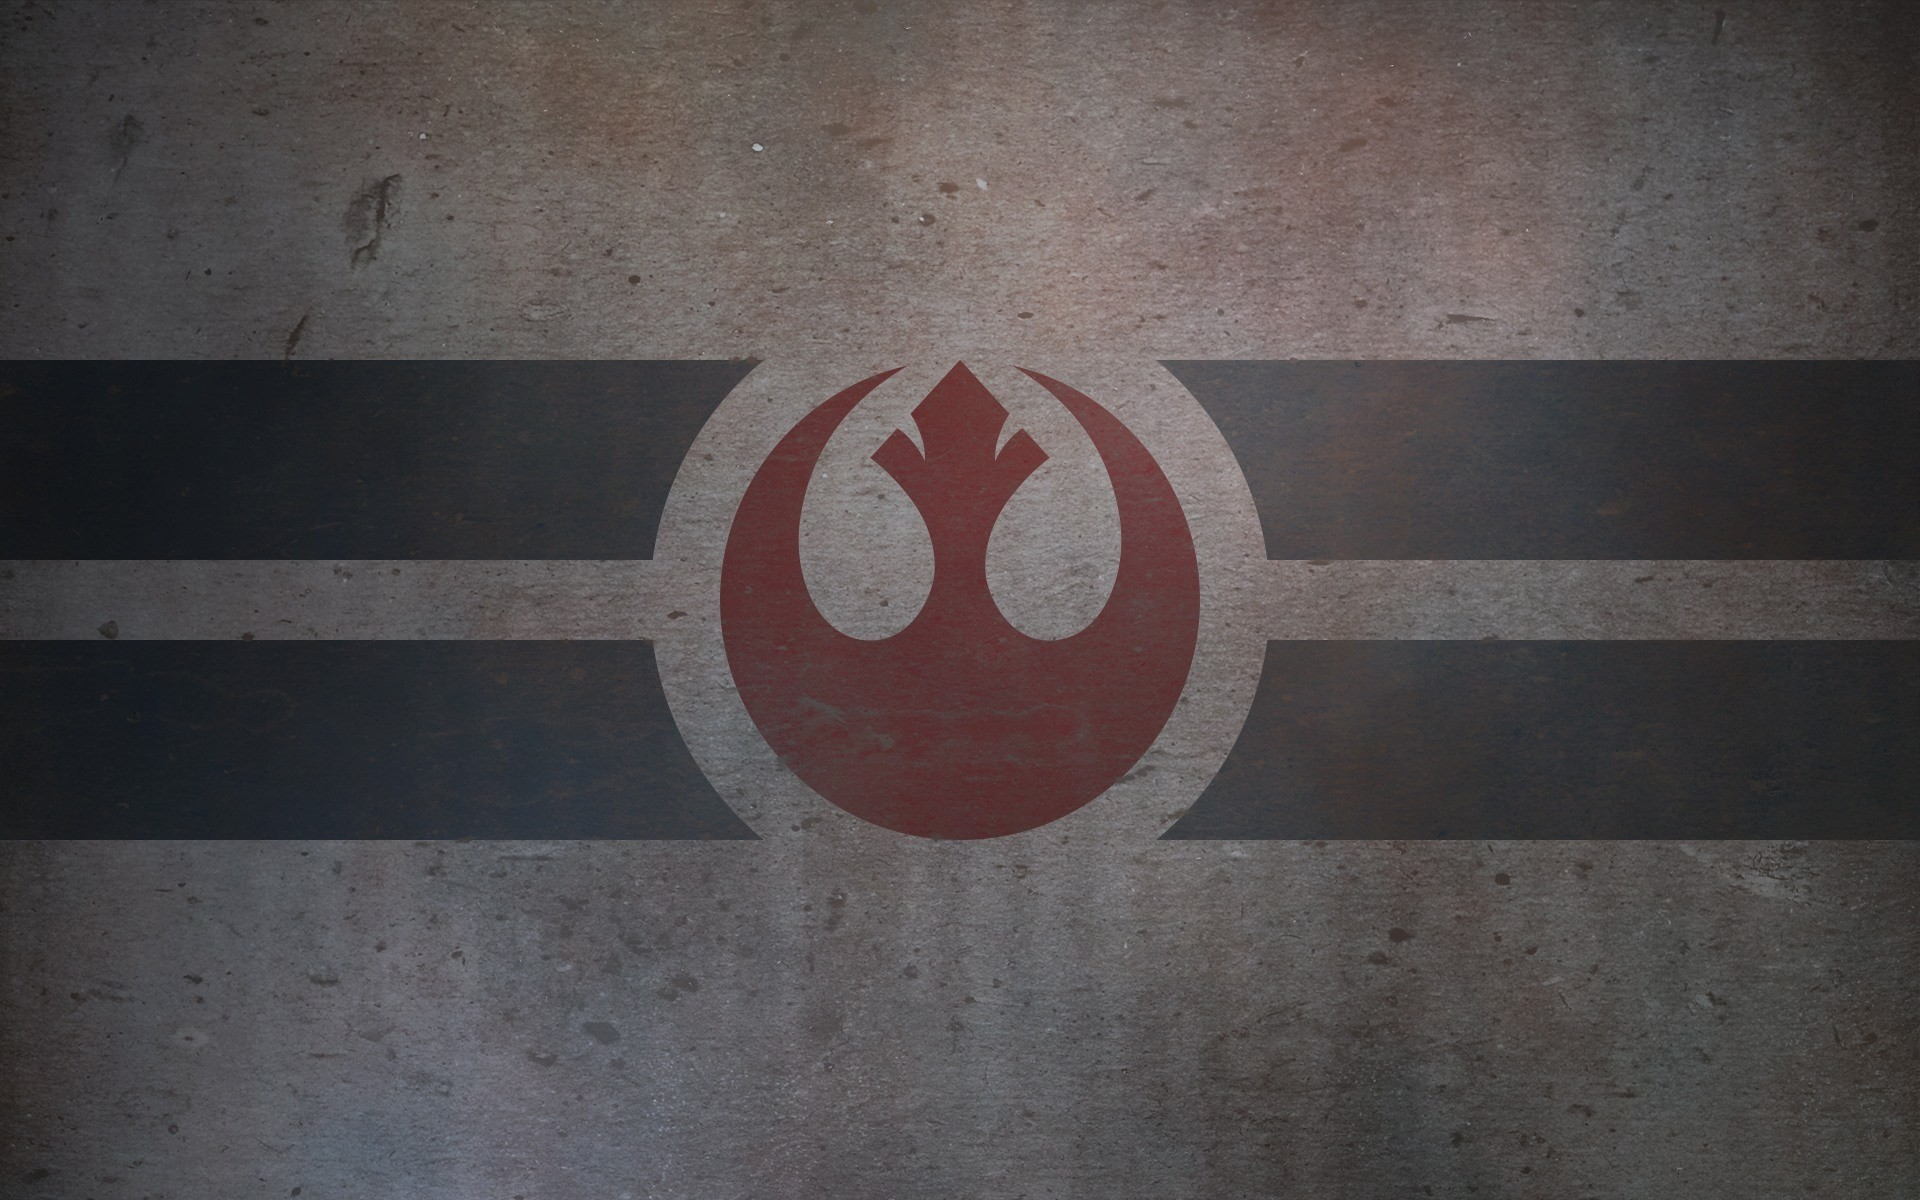 1920x1200 ... Best Rebel Backgrounds Wallpaper Free Wallpaper For Desktop and Mobile  in All Resolutions Free Download wallpaper